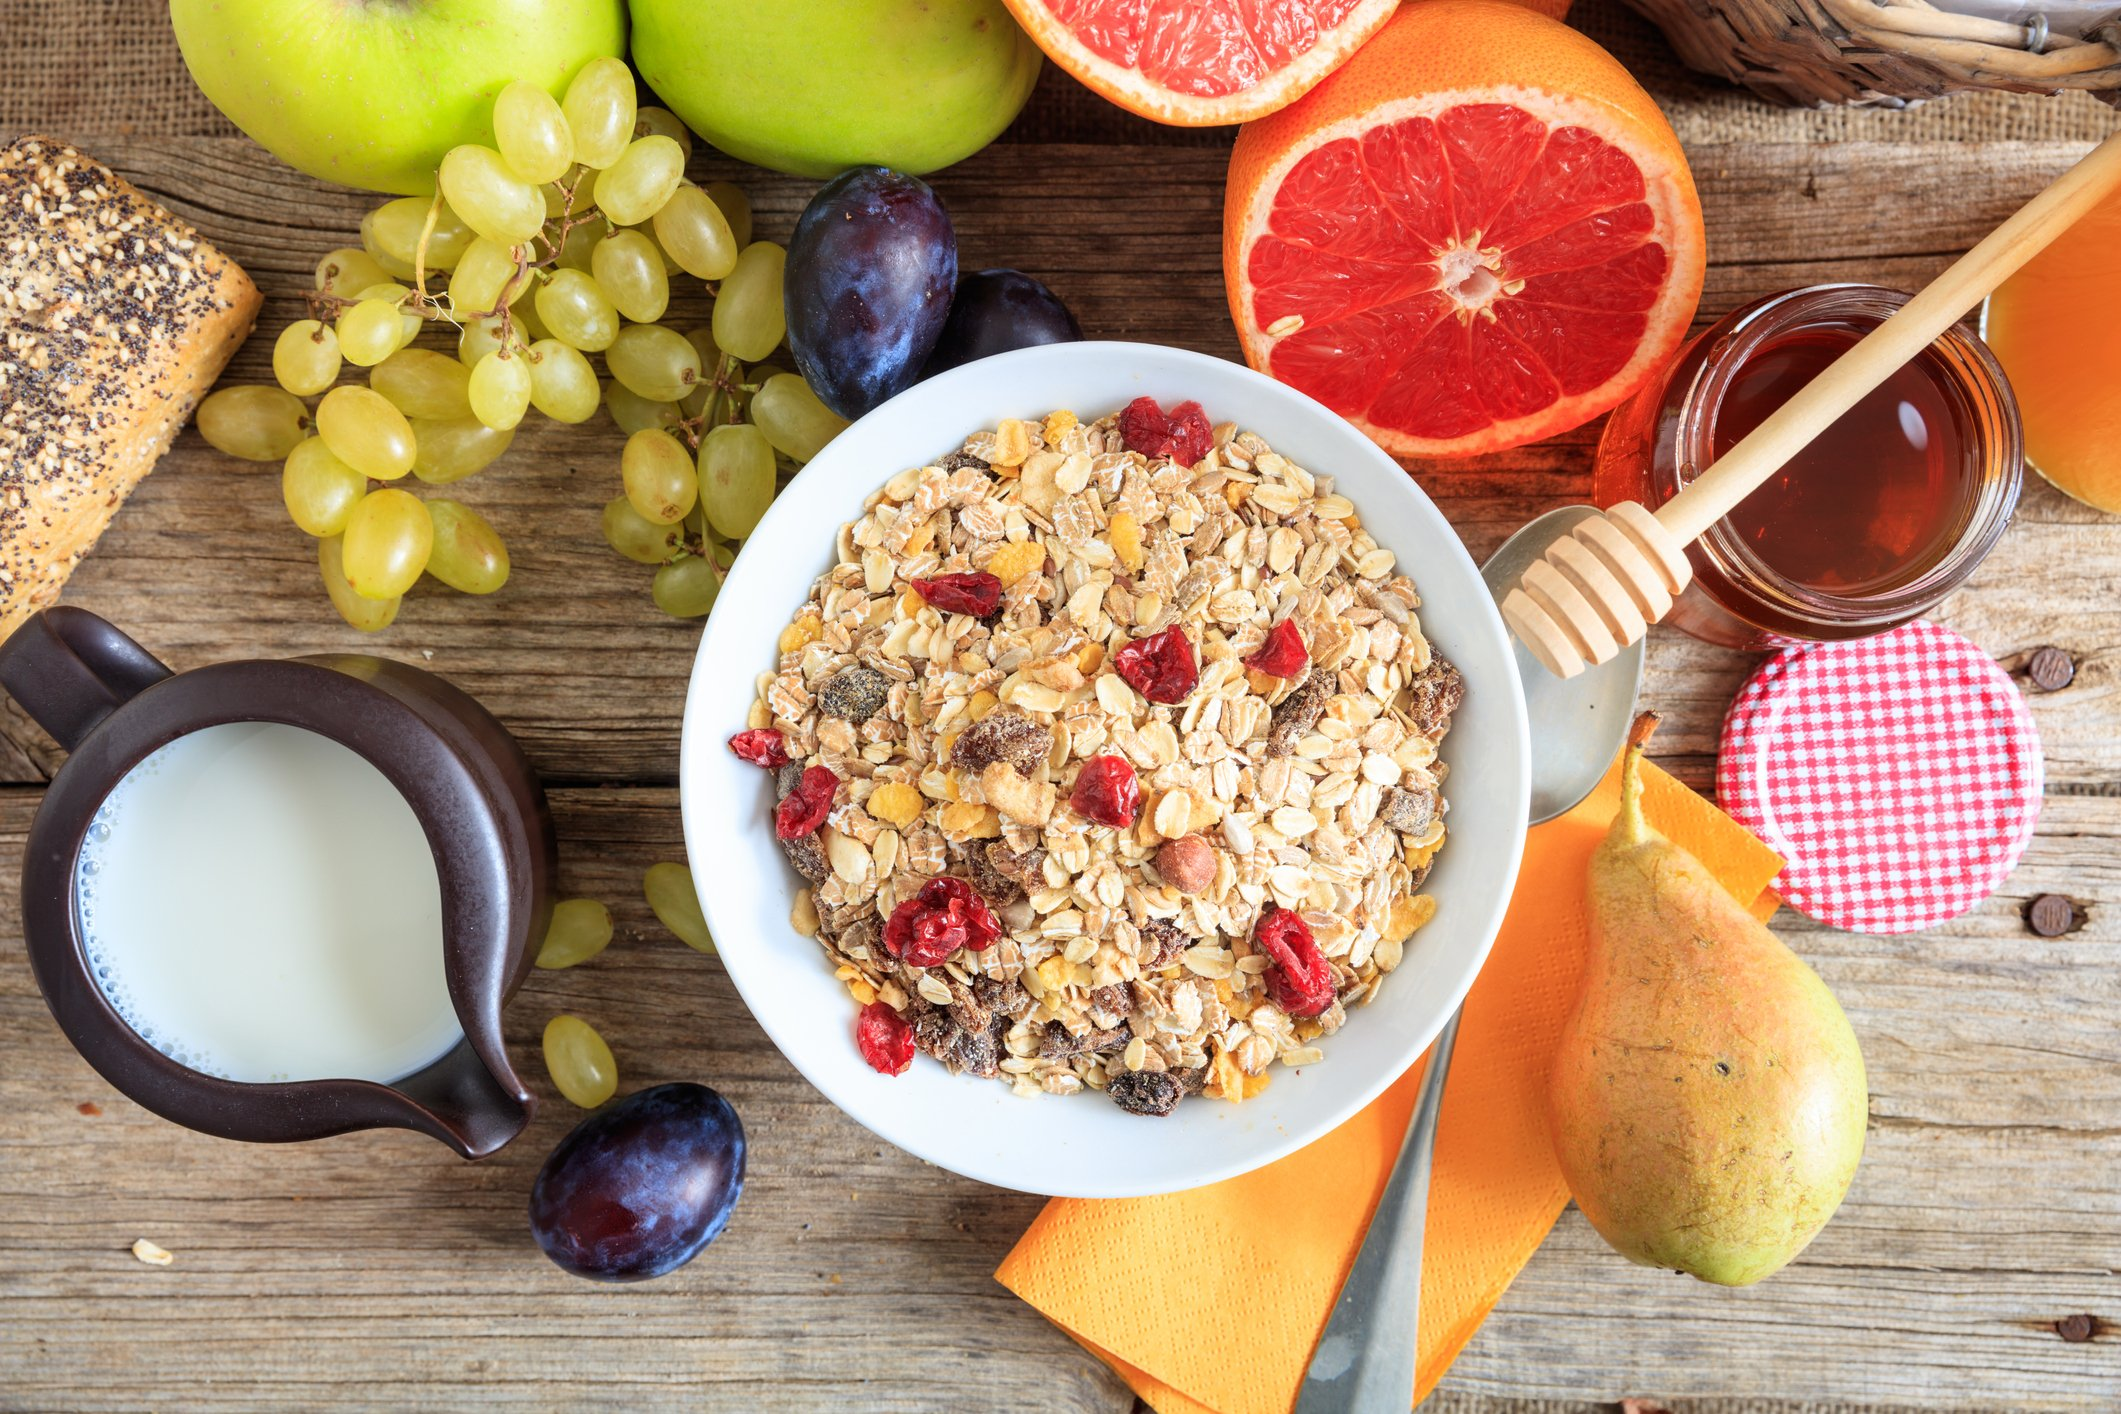 Gluten-free oats and fruit are a great gluten-free breakfast idea, especially in the summer. (iStock Photo)